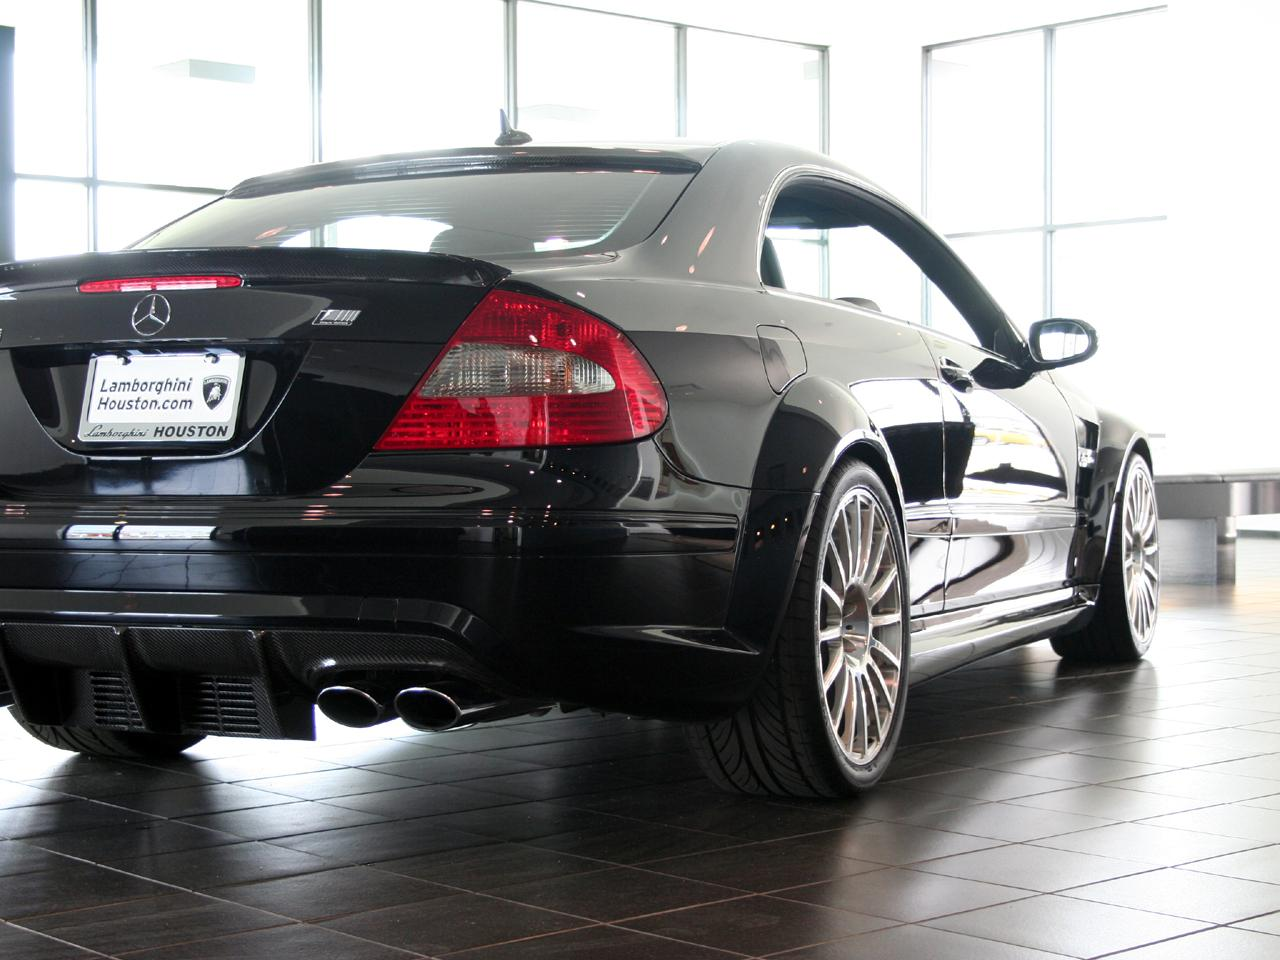 Mercedes benz clk63 black series 13 german cars for sale for Mercedes benz clk63 amg black series for sale